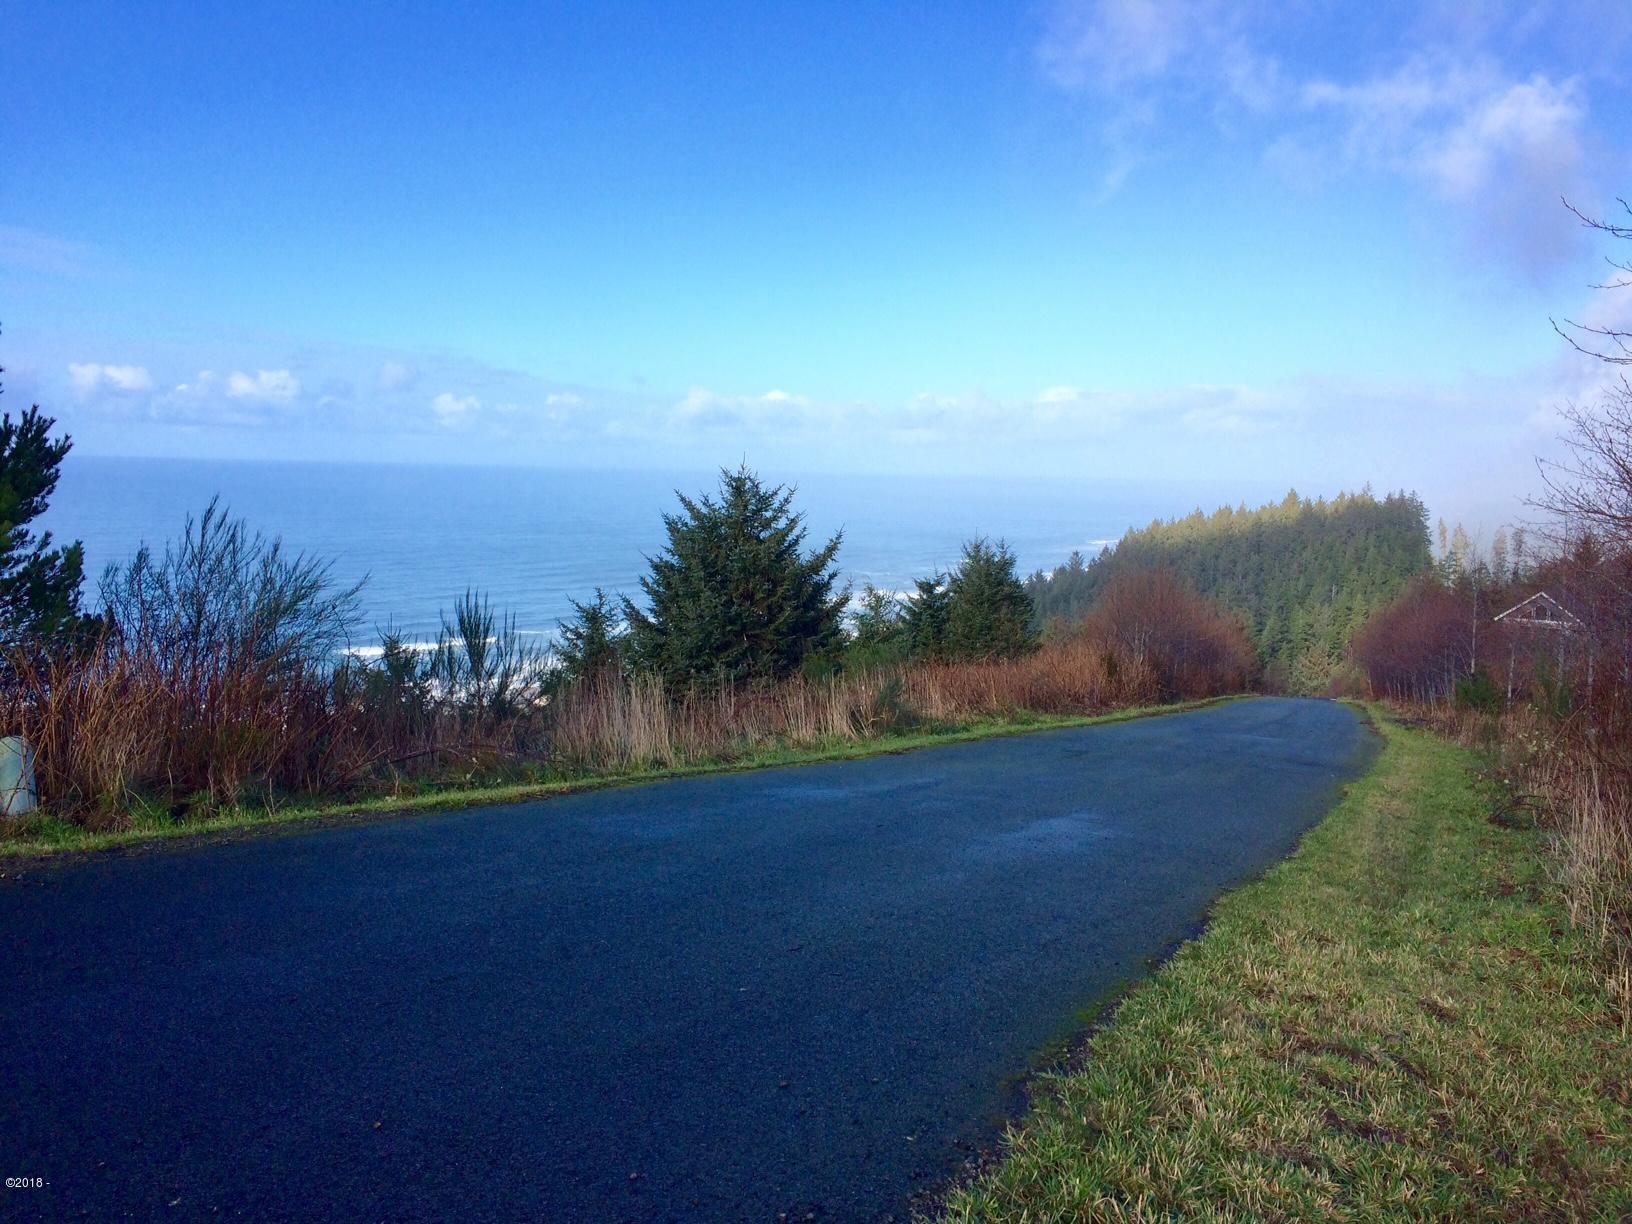 LOT 2300 Horizon Hill Road, Yachats, OR 97498 - 2300_Ocean view_NW